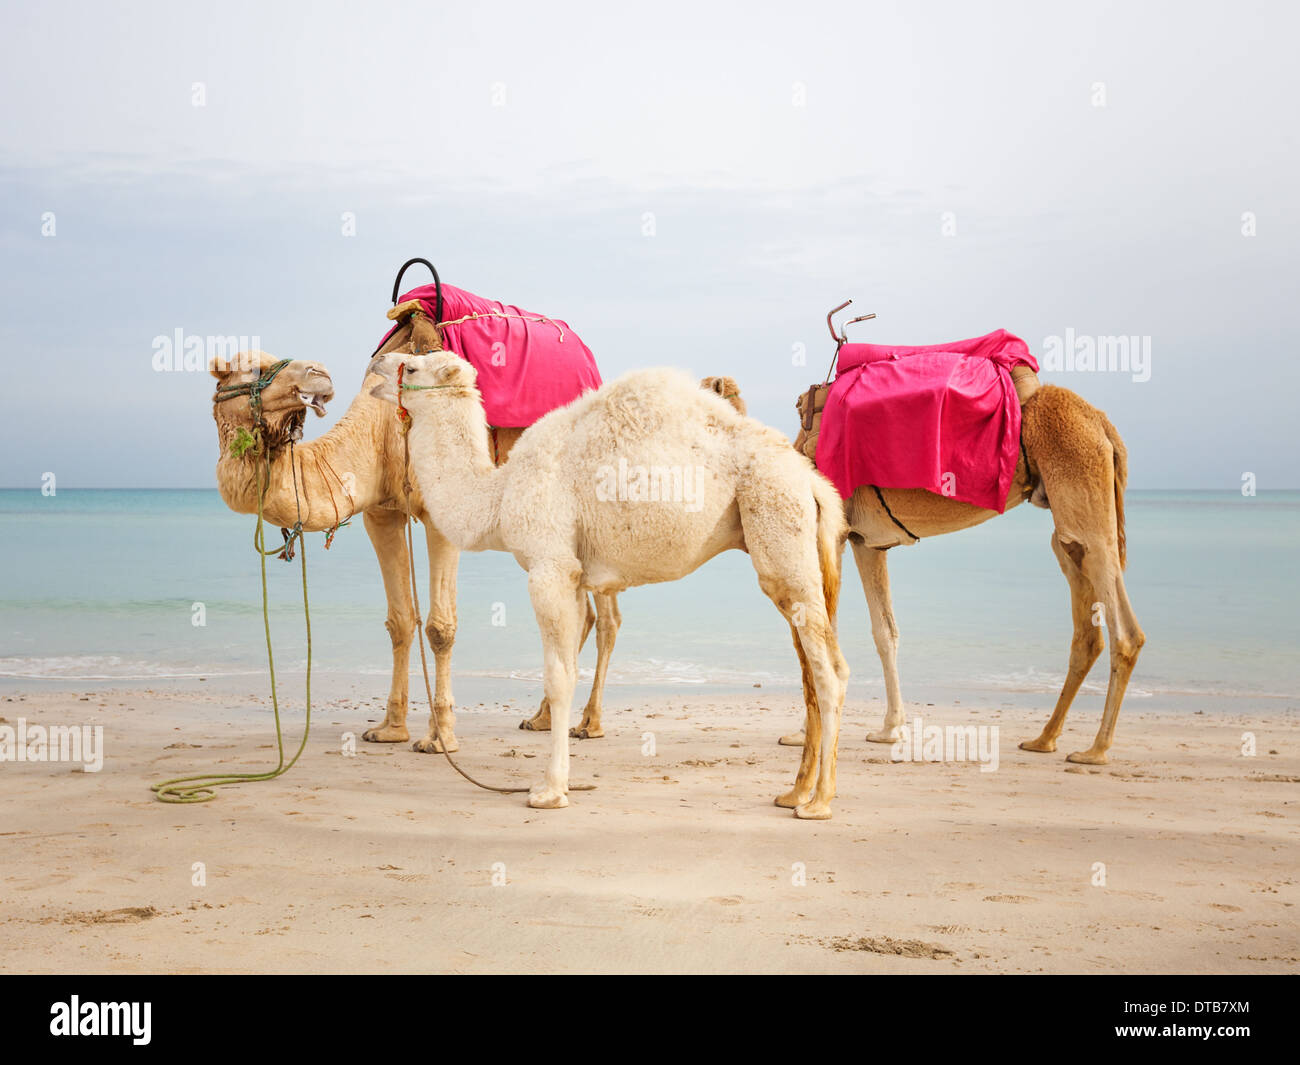 Two camels and white baby dromedary on the beach in Tunesia - Stock Image